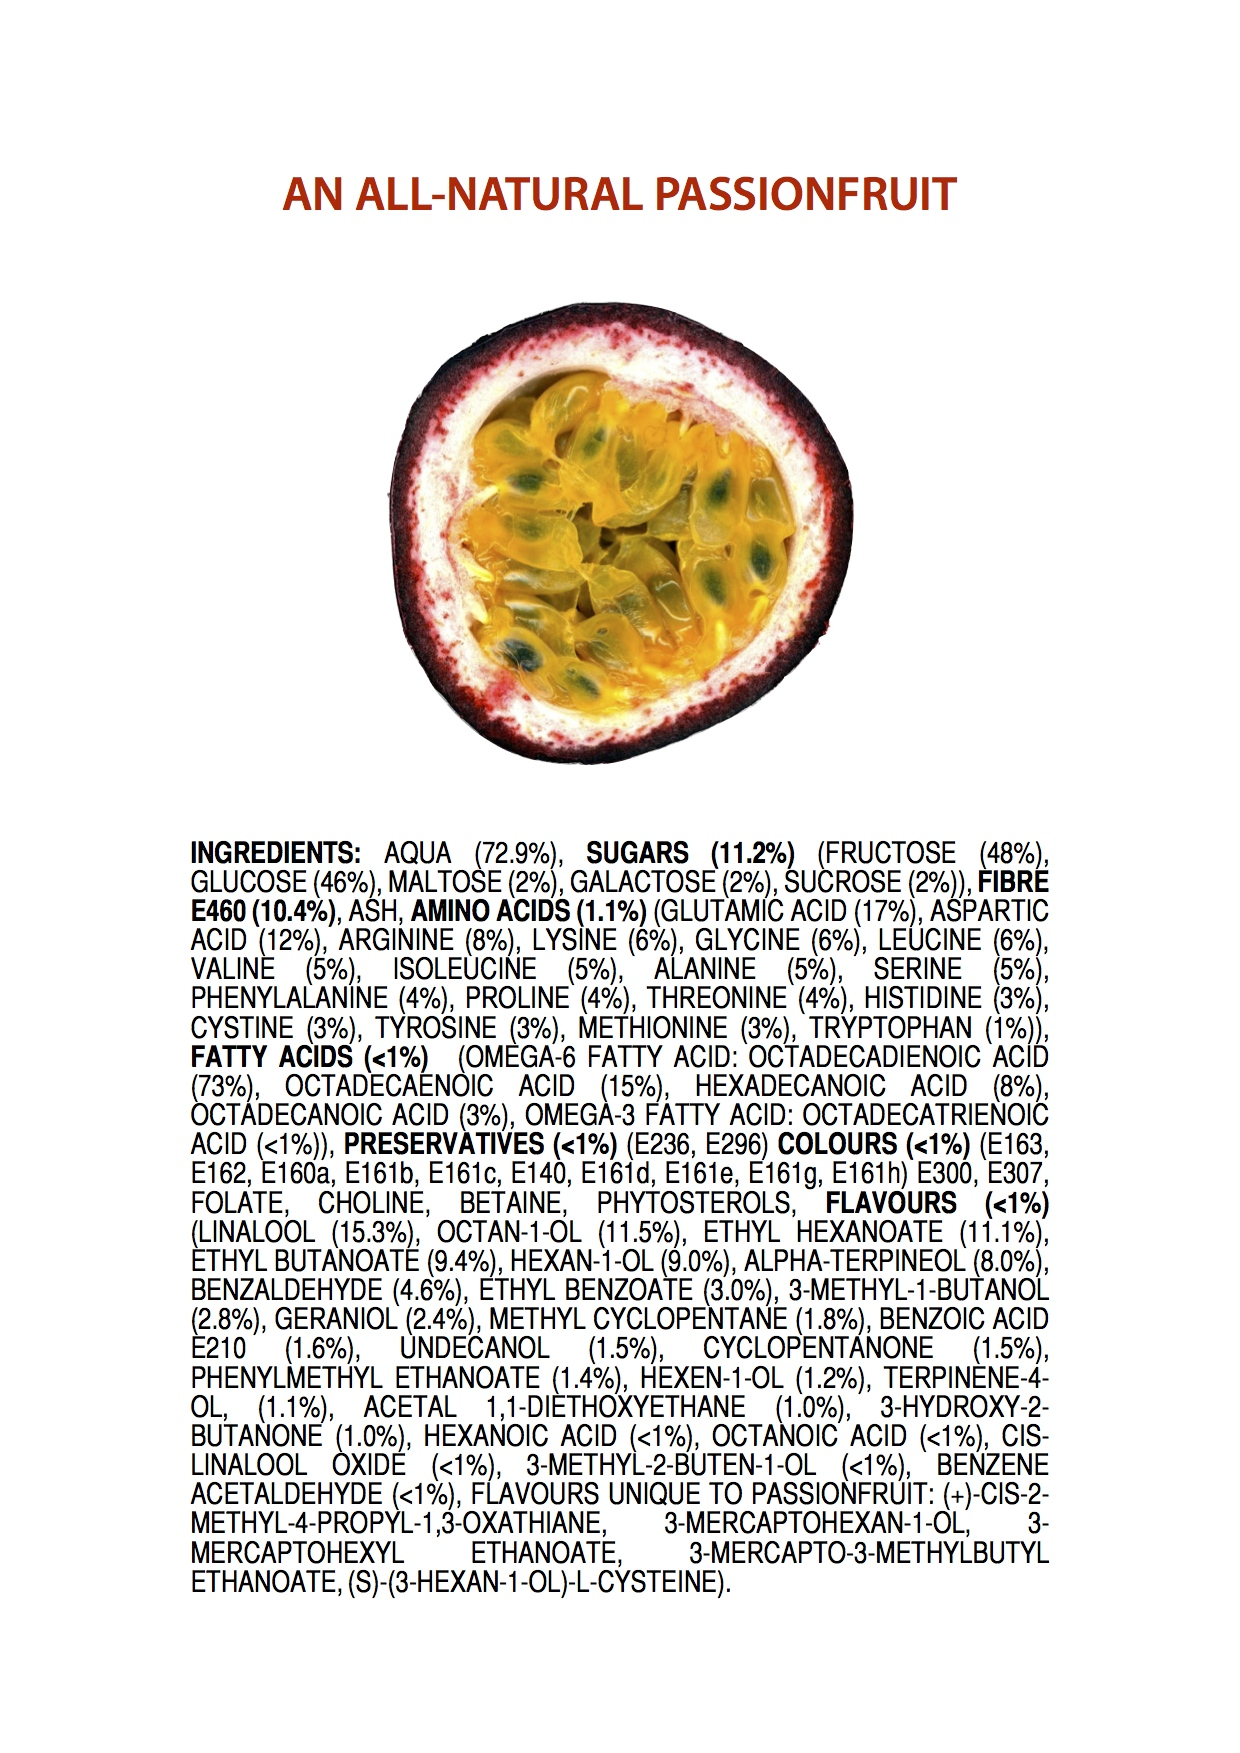 ingredients-of-an-all-natural-passionfruit-poster